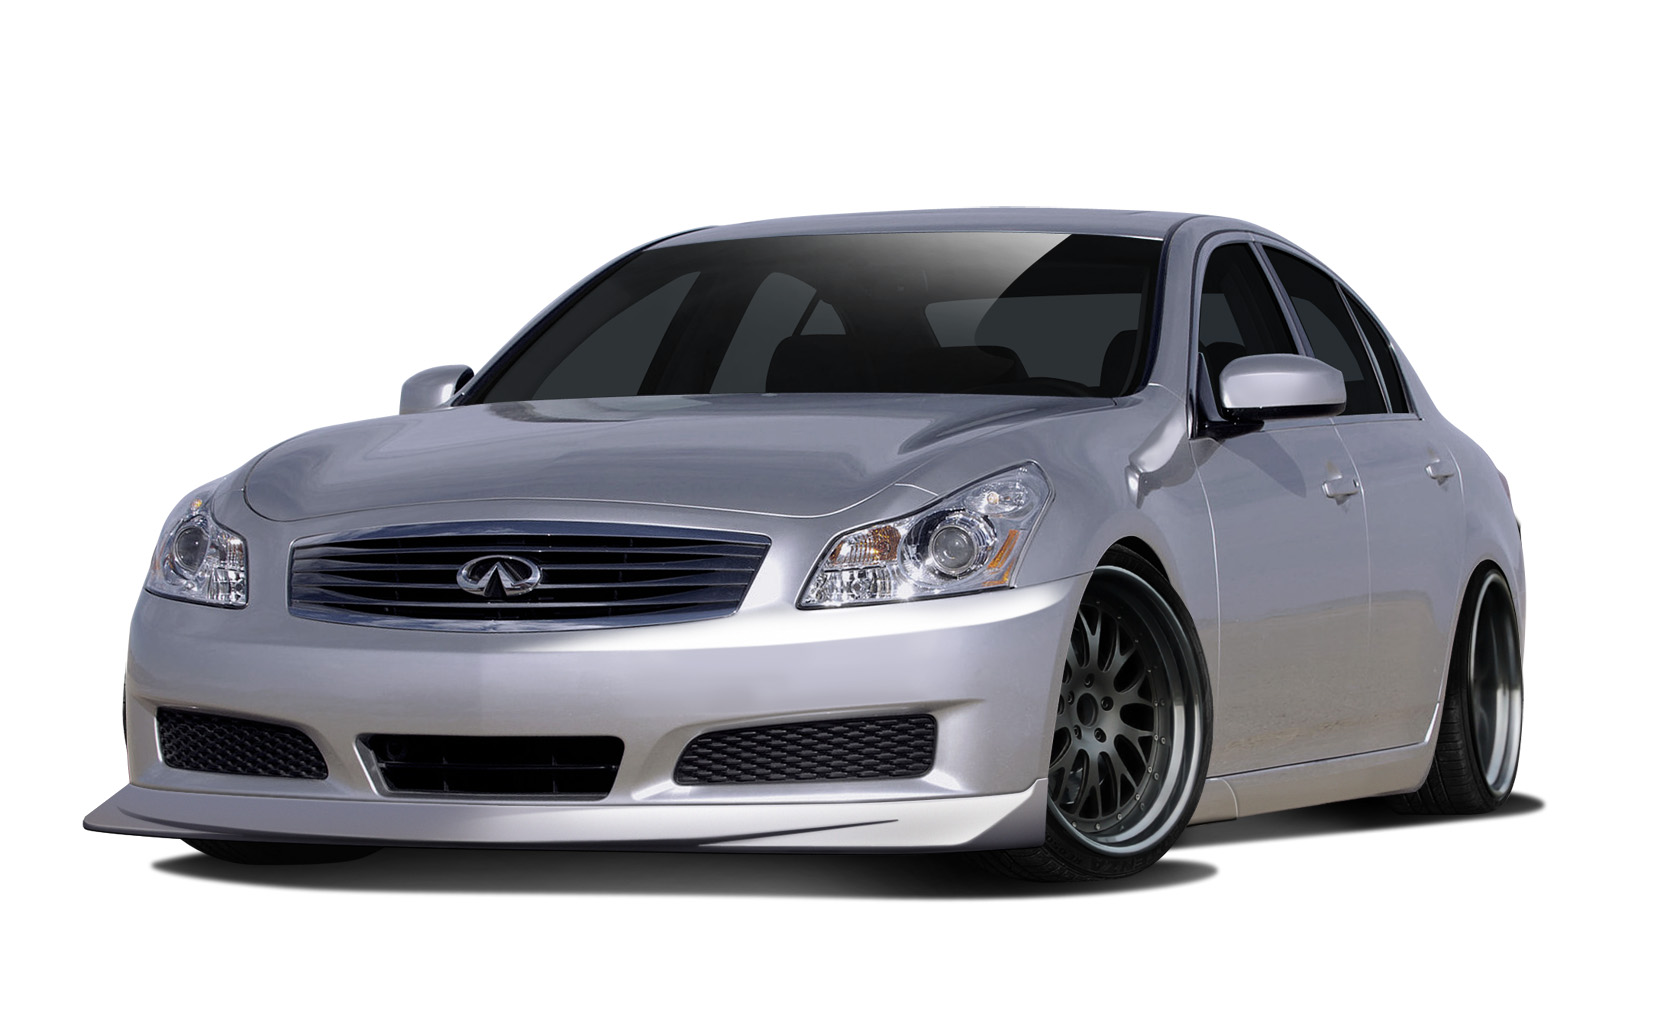 2010 Infiniti G Sedan  - Polypropylene Body Kit Bodykit - Infiniti G Sedan Couture Vortex Body Kit - 5 Piece - Includes Vortex Front Lip (112381), Vor